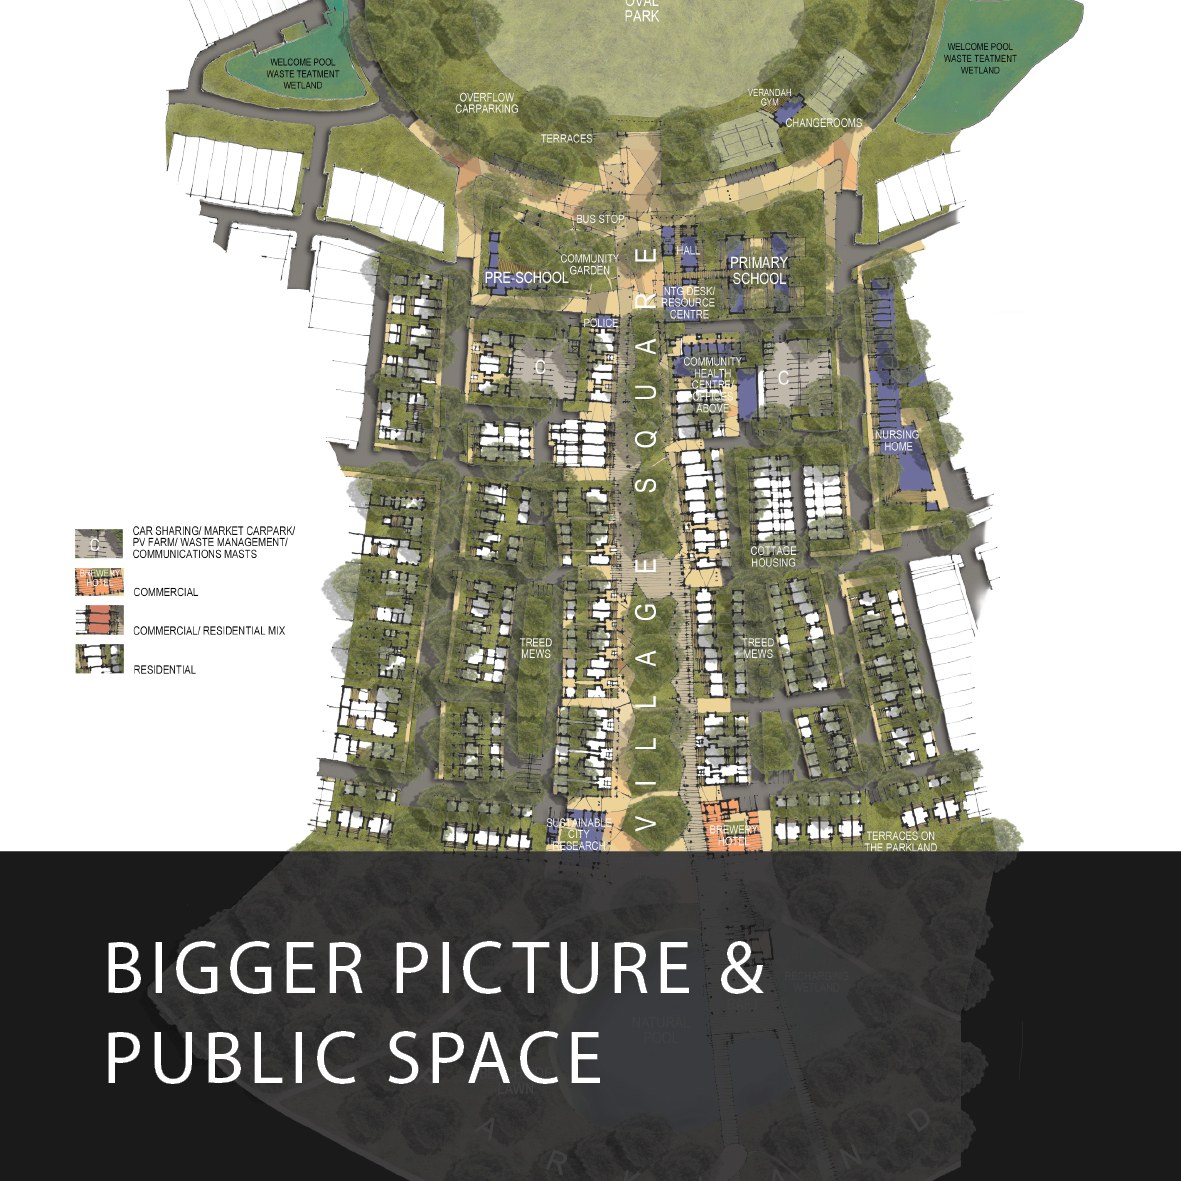 BIGGER PICTURE & PUBLIC SPACE